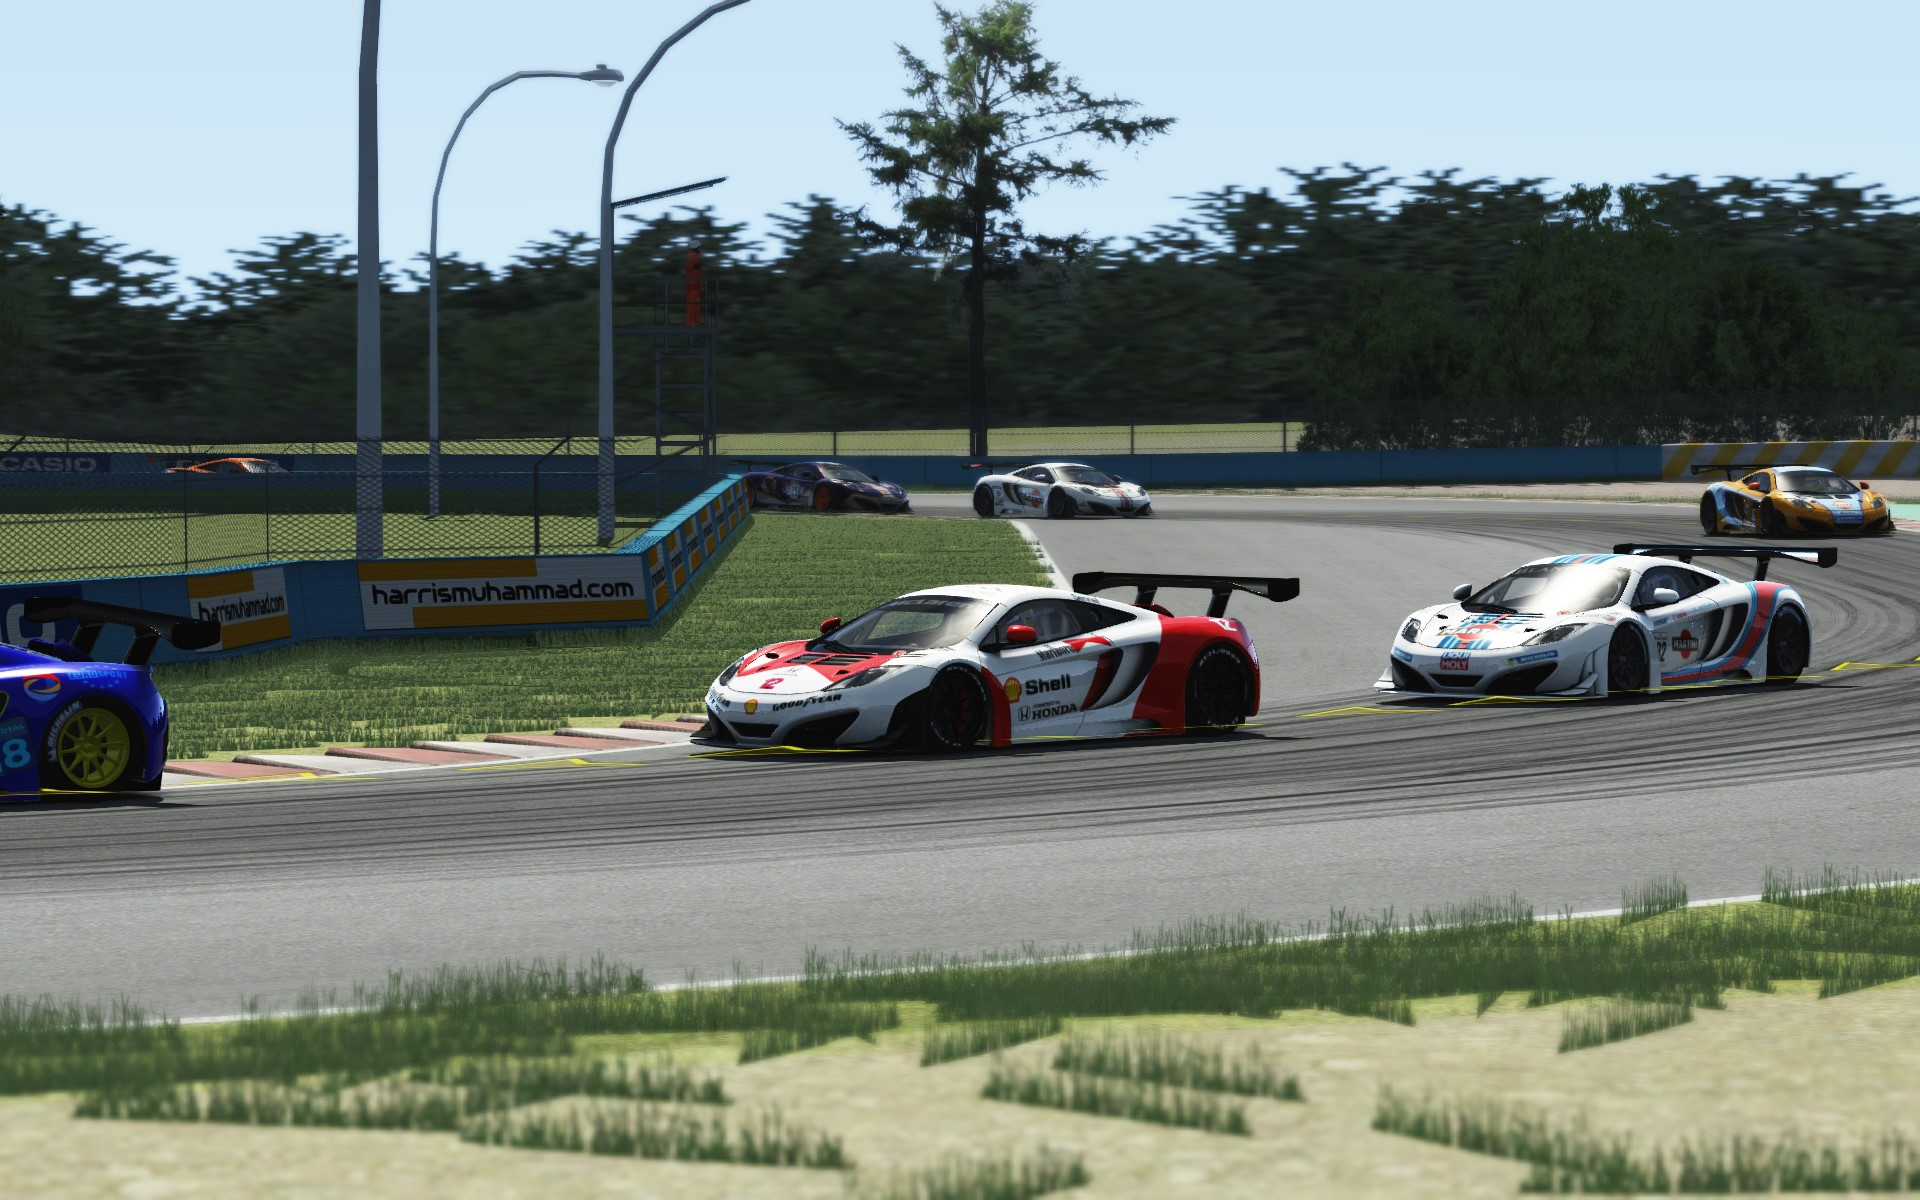 Screenshot_mclaren_mp412c_gt3_sentul_circuit_30-7-115-12-43-12.jpg